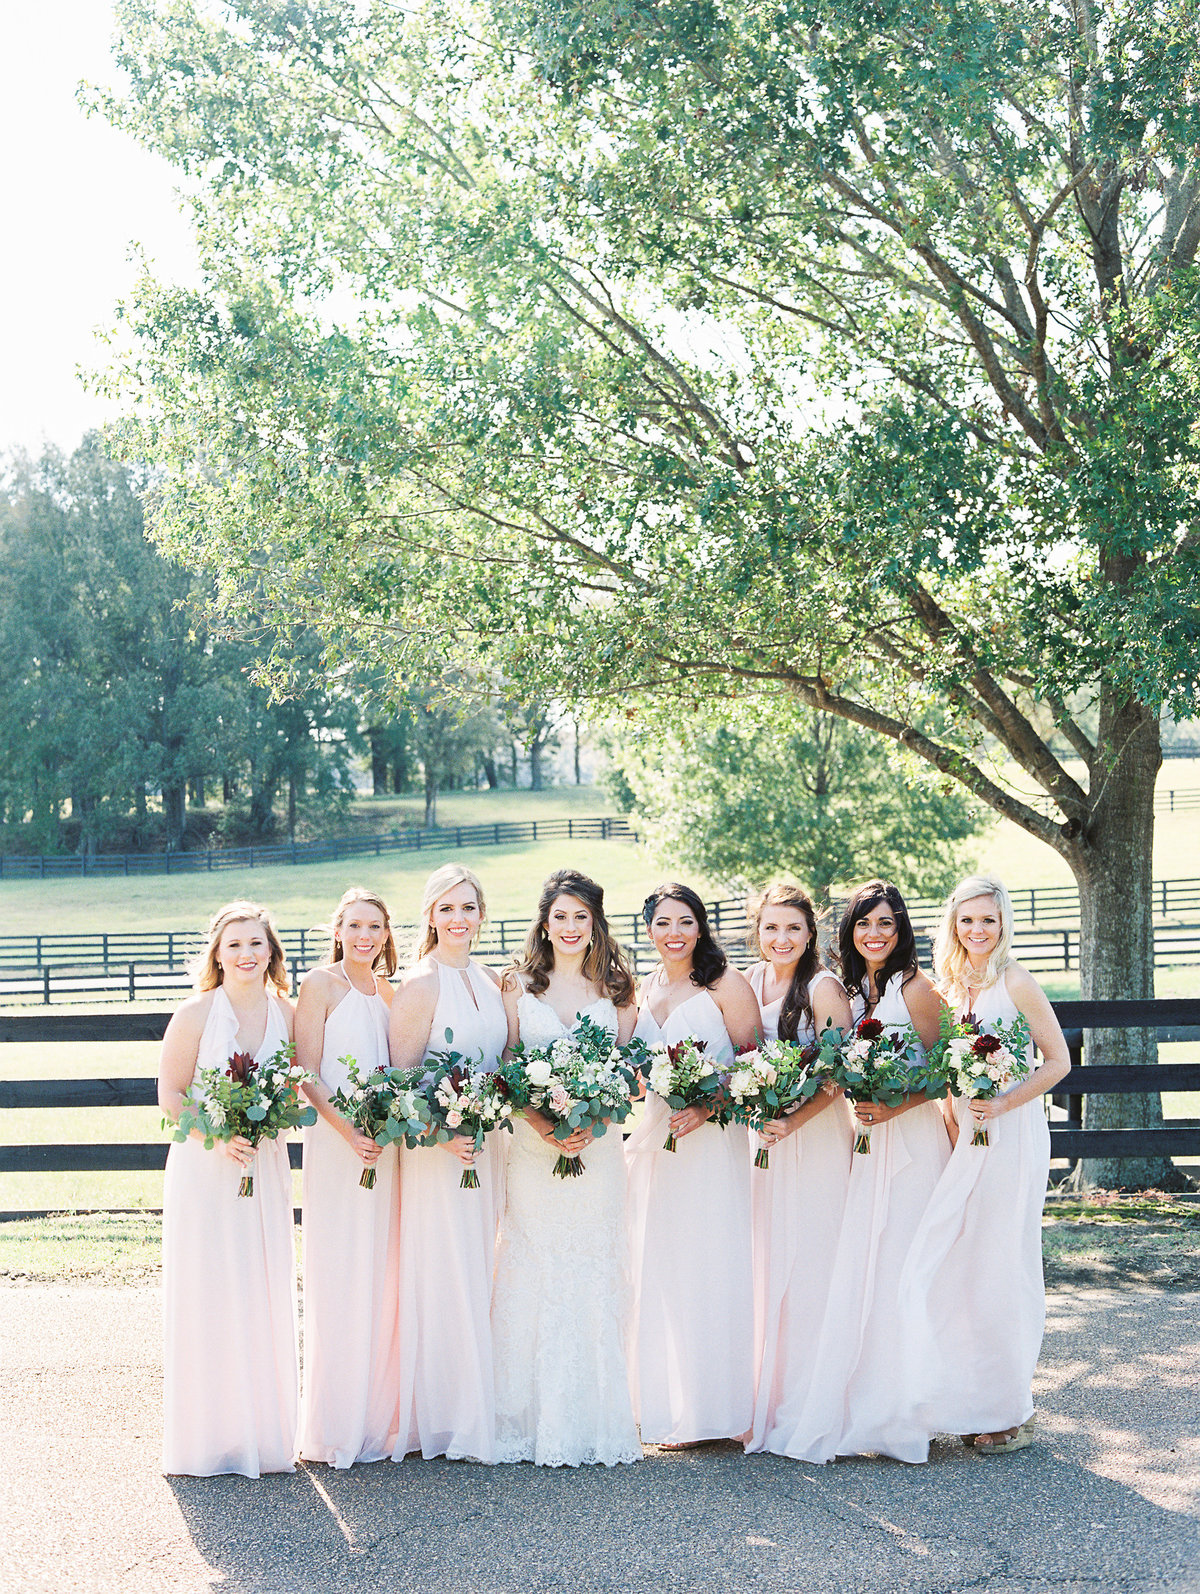 669_Anne & Ryan Wedding_Lindsay Vallas Photog